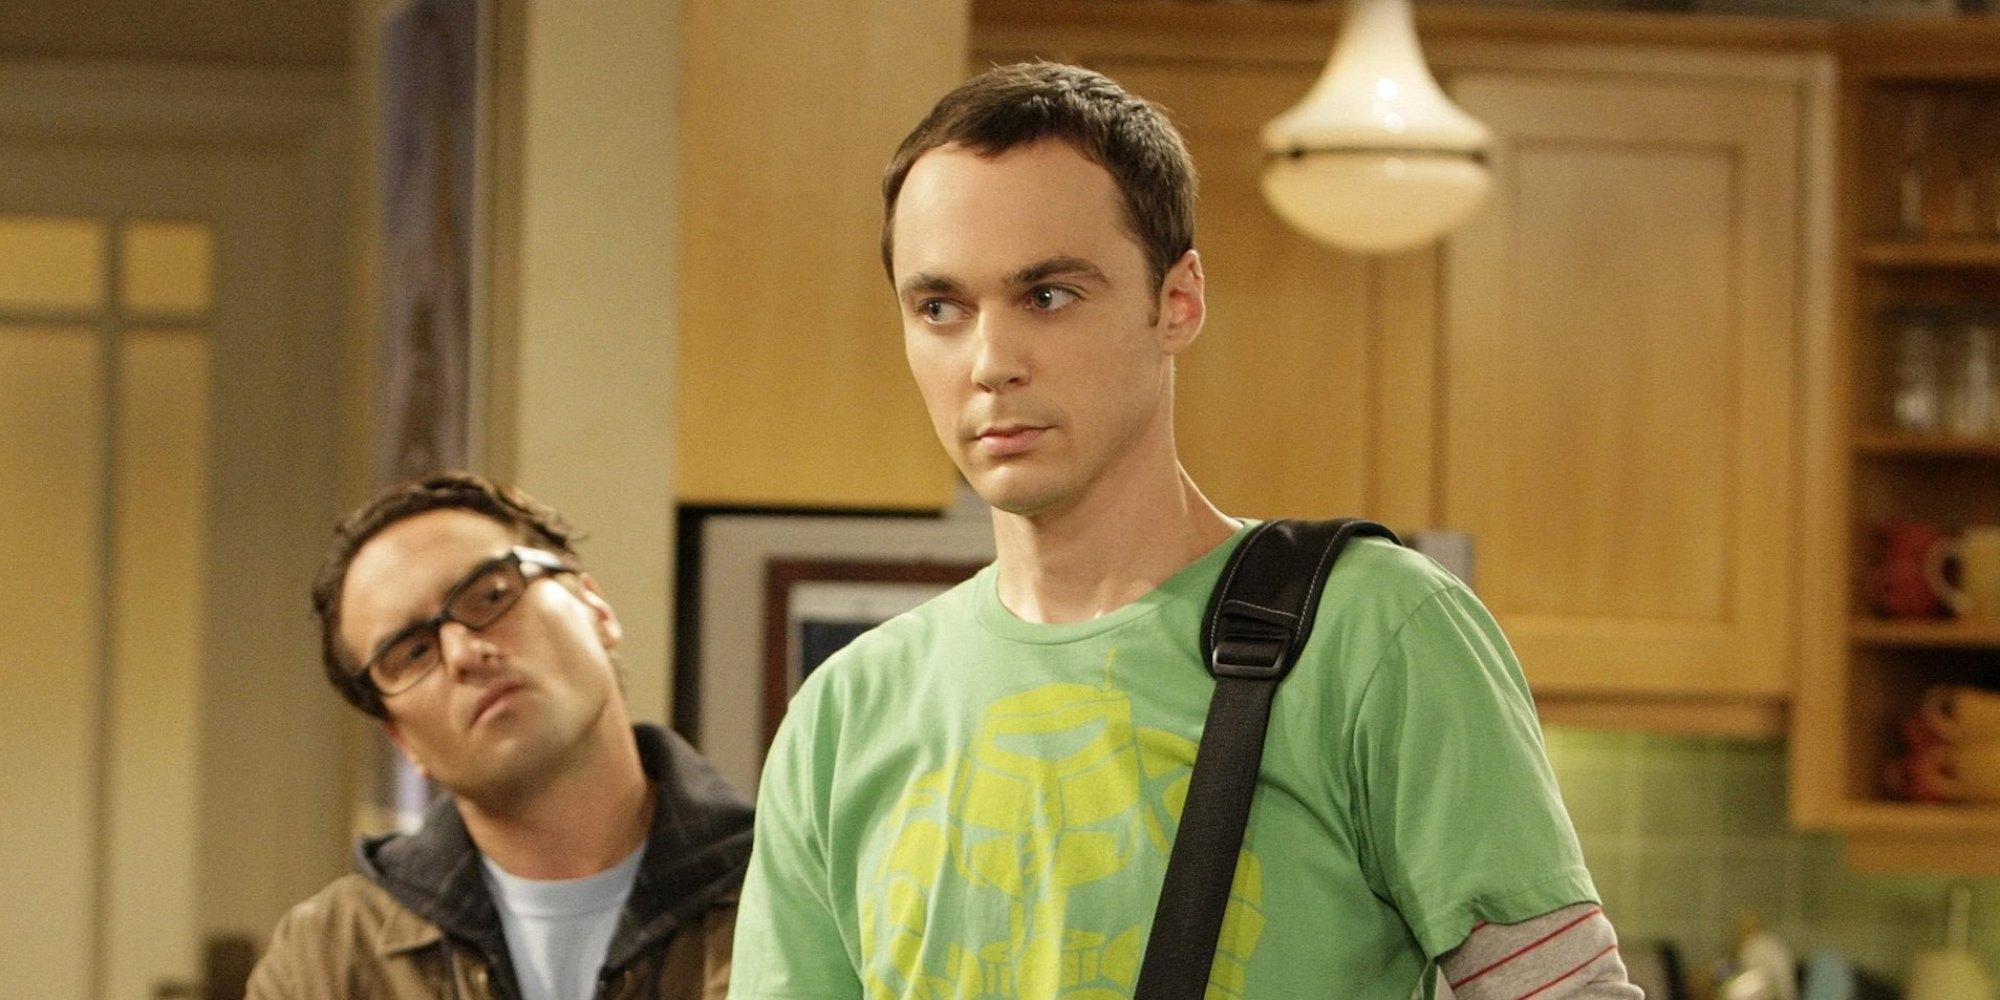 "LOS ANGELES - AUGUST 19: ""The Bad Fish Paradigm"" - After her first date with Leonard (Johnny Galecki, left) goes awry, Penny finds an unwilling confidant in Leonard's anti-social roommate, Sheldon (Jim Parsons, right), on the second season premiere of THE BIG BANG THEORY, Monday, September 22 (8:00-8:30 PM, ET/PT) on the CBS Television Network. (Sonja Flemming/CBS via Getty Images)"